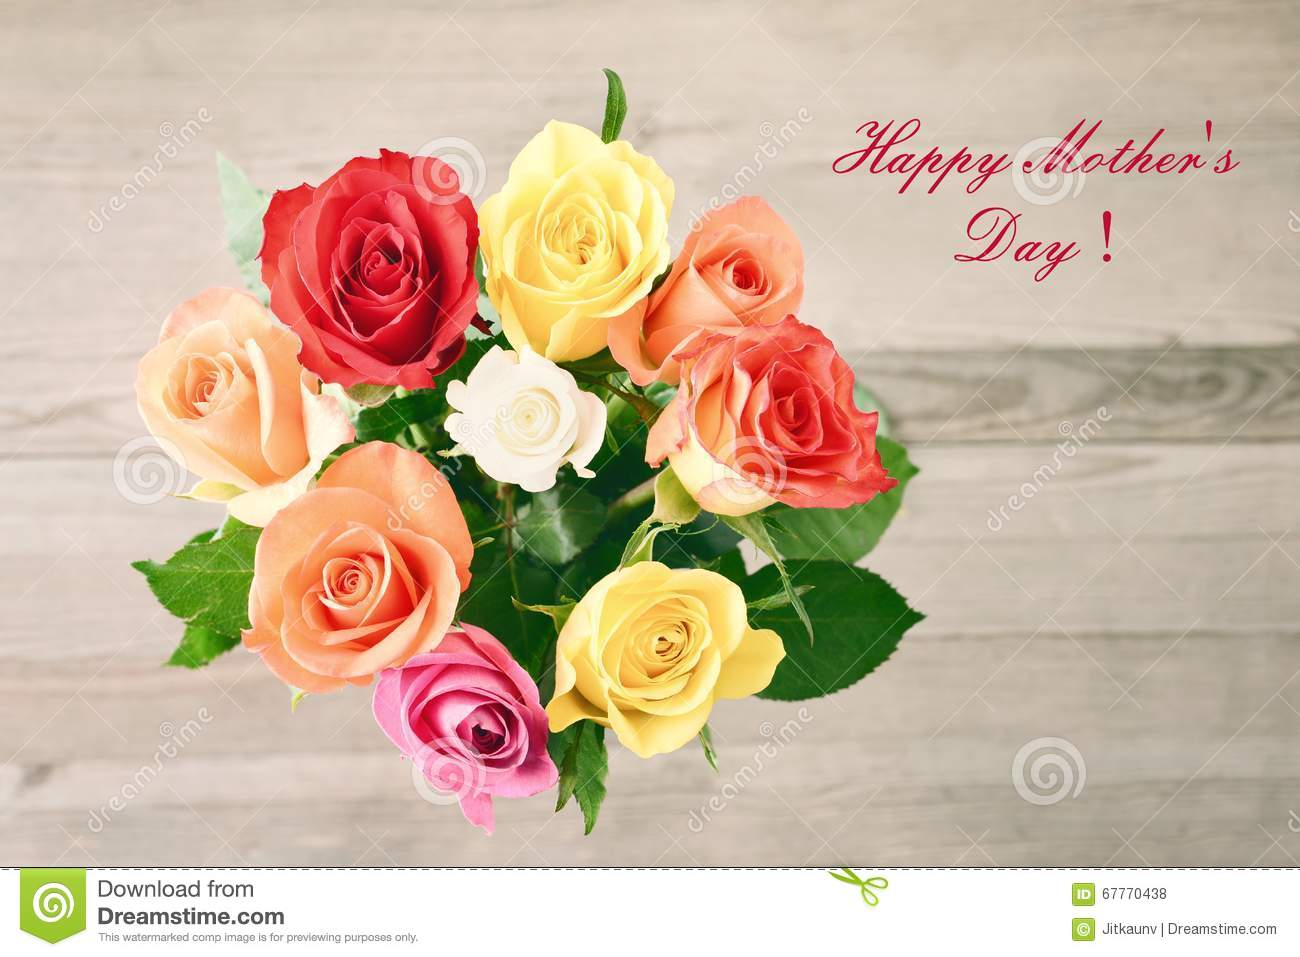 Mothers Day. Bouquet Of Roses. Stock Photo - Image: 67770438